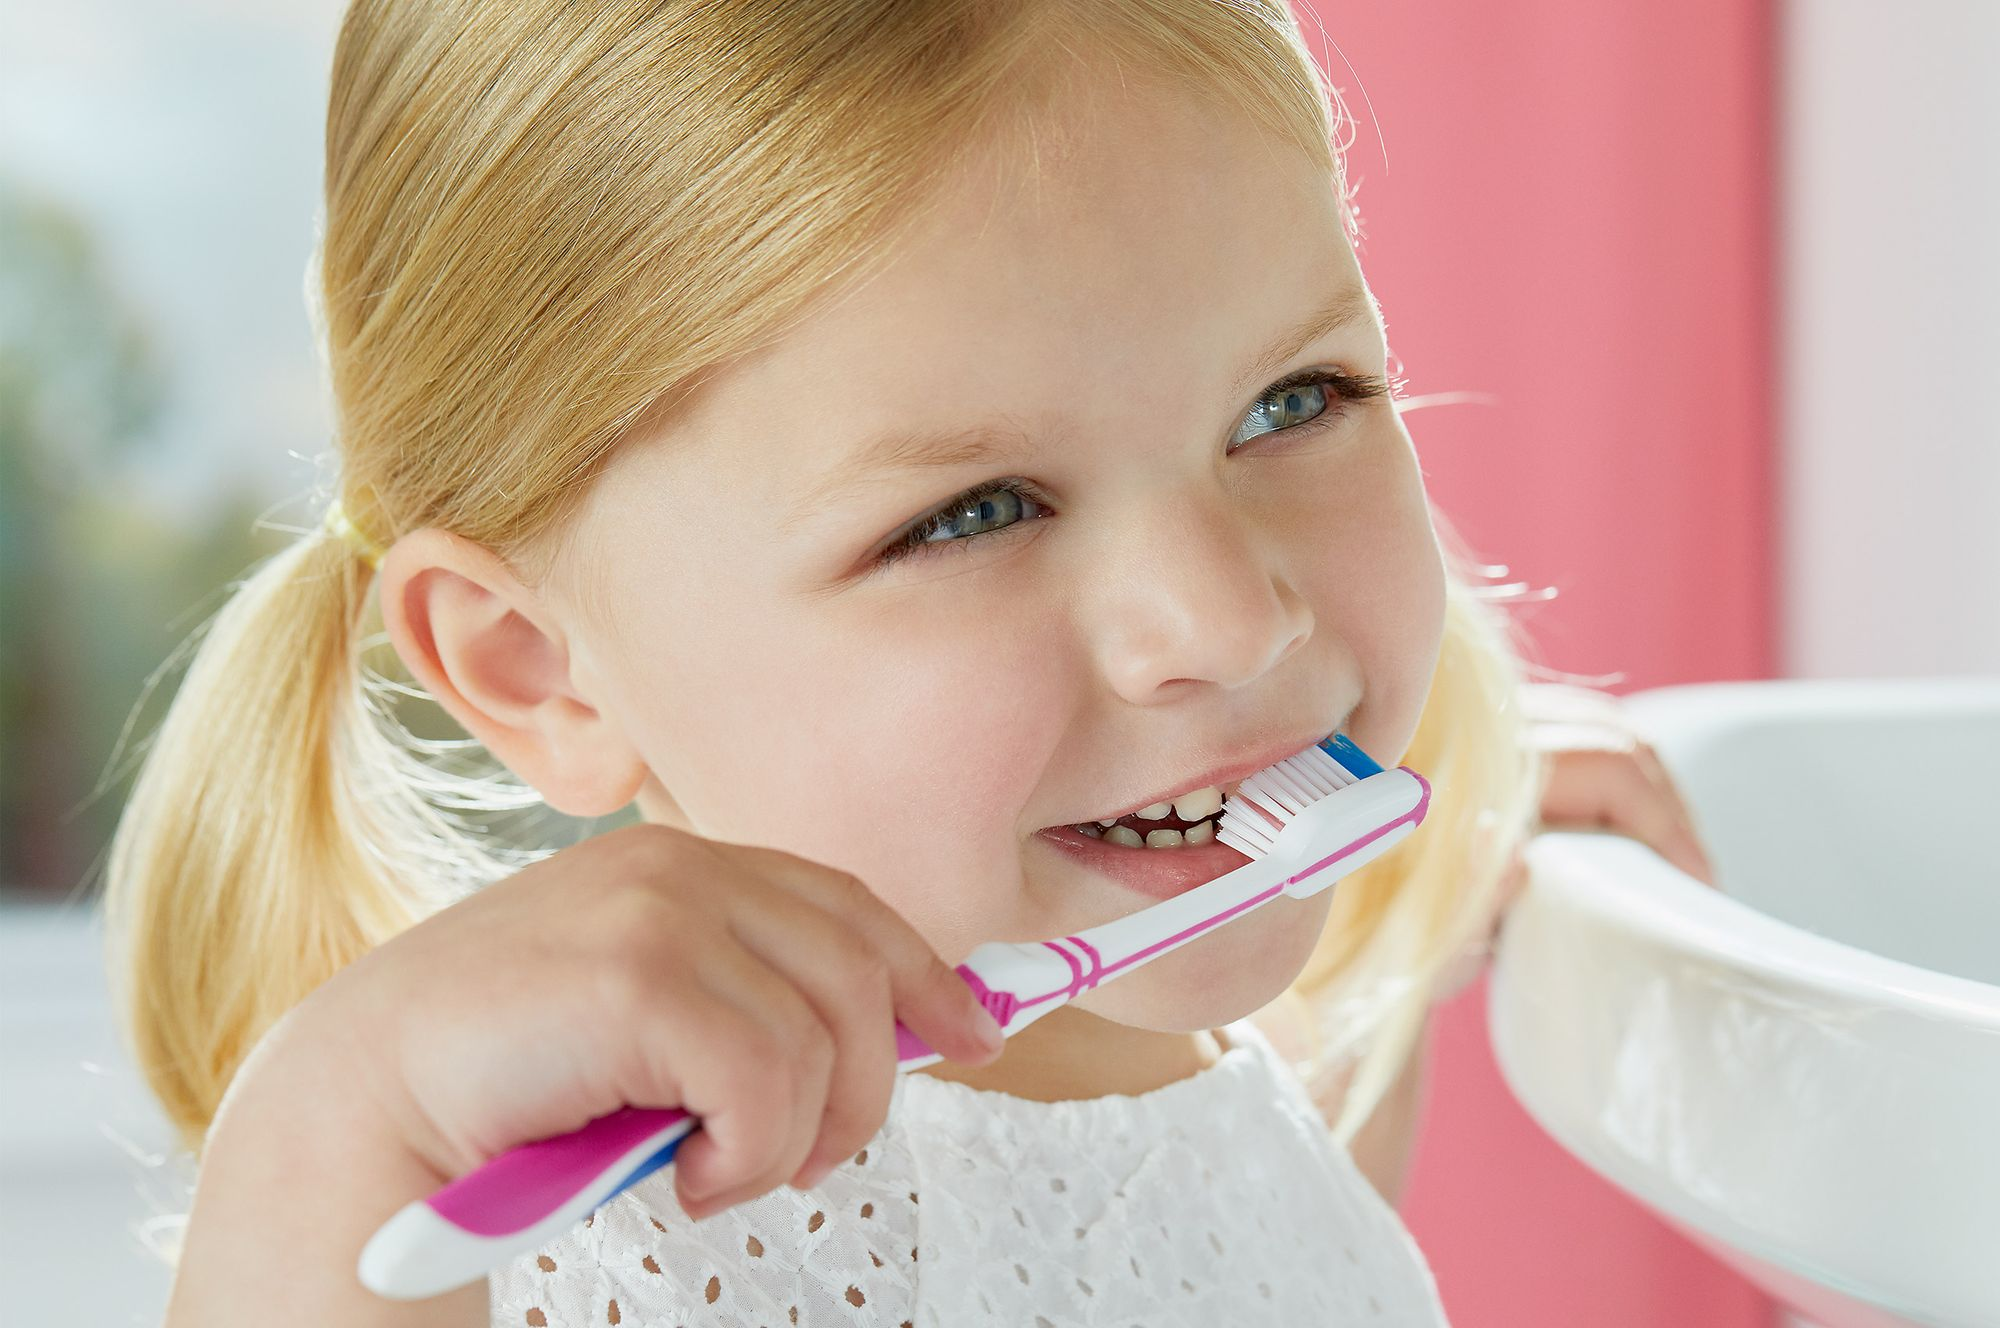 Caucasian young girl brushing her teeth